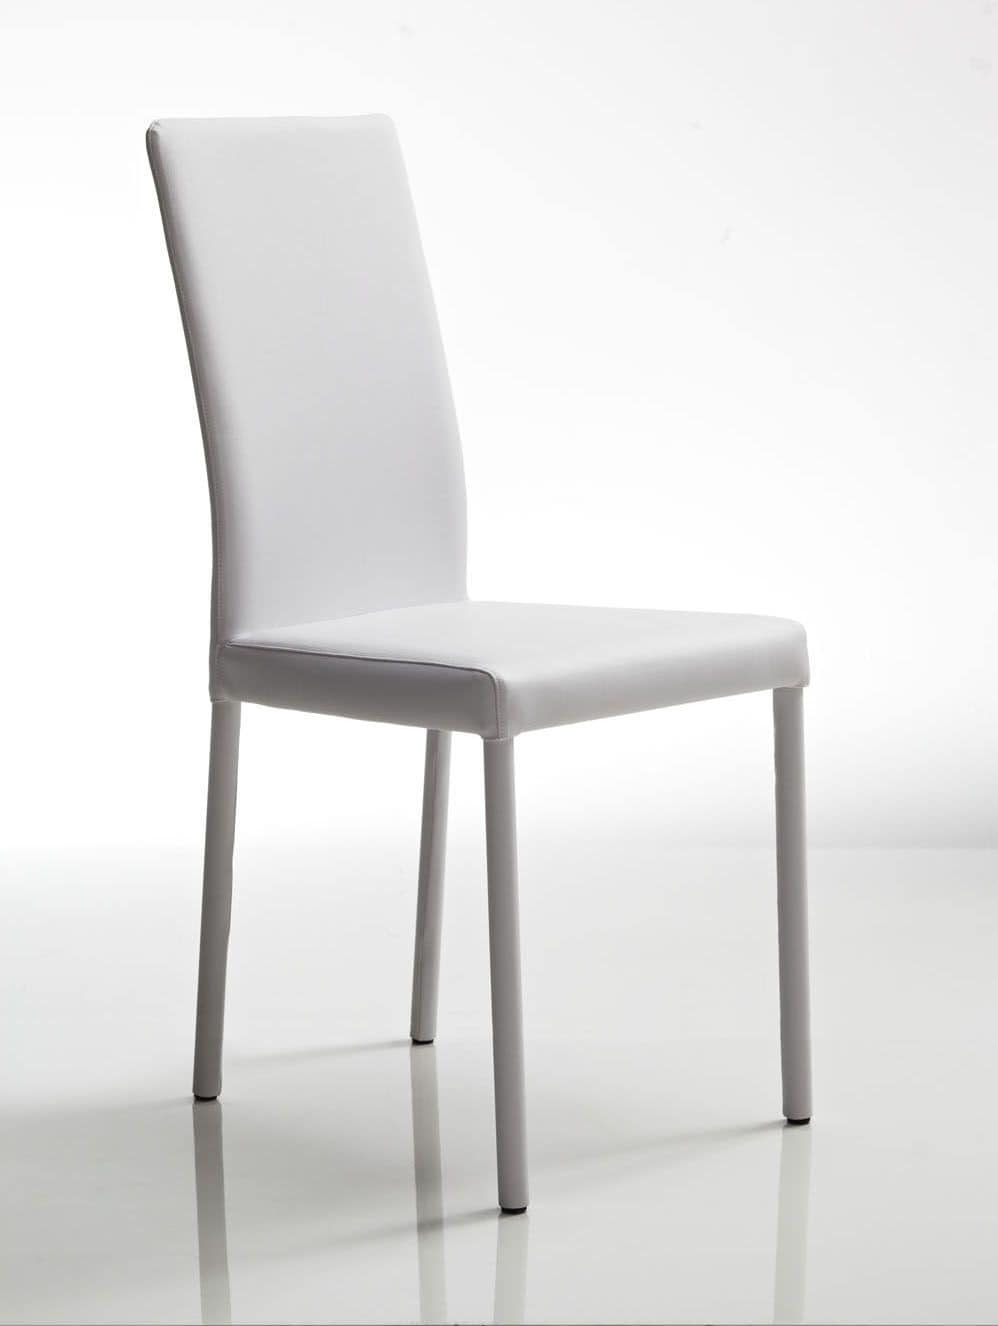 Juno, White leather chair, steel frame, for restaurant and residential use